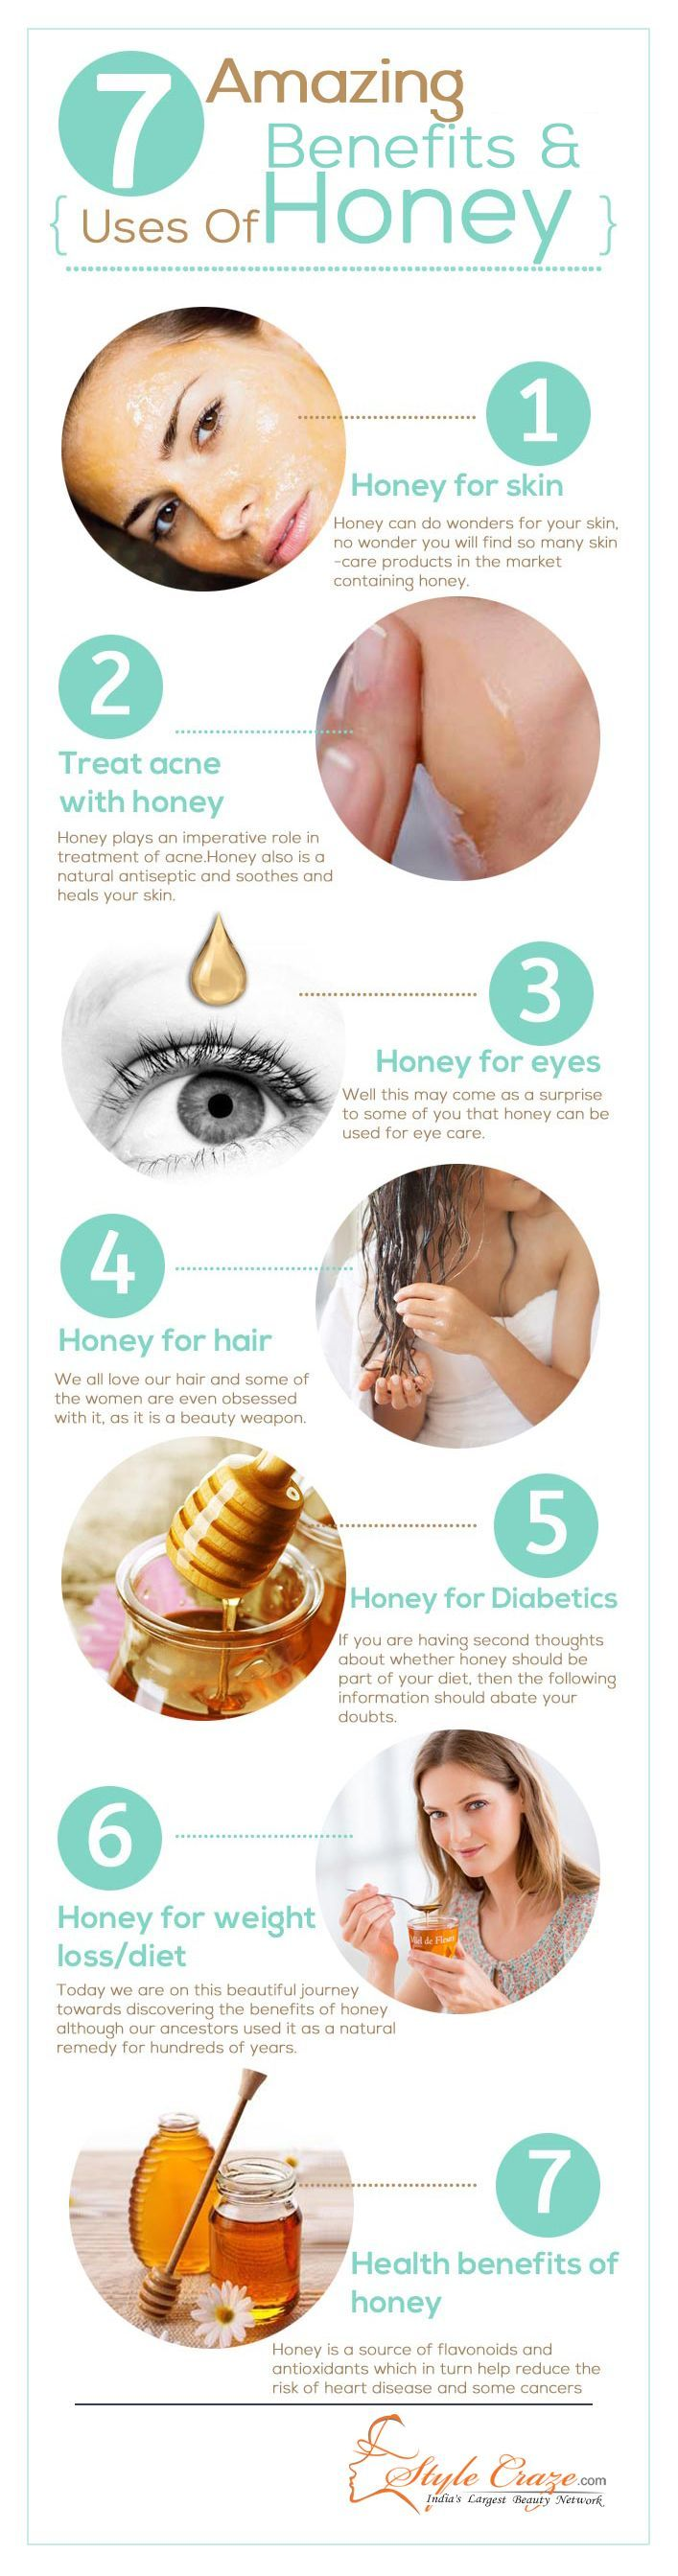 7 Amazing Benefits and Uses or Honey